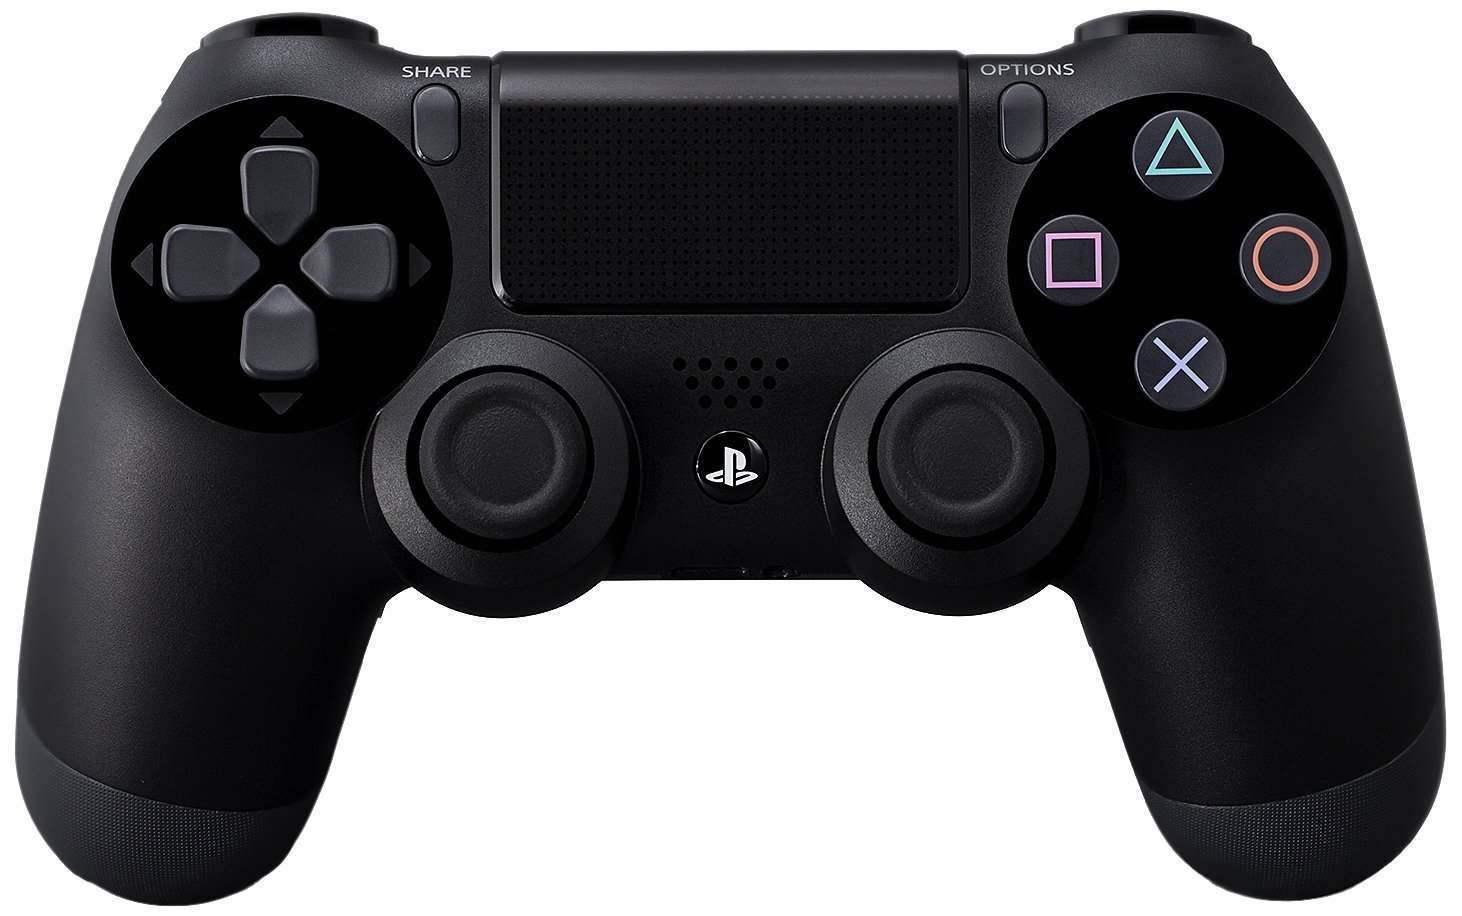 And Controllers The Games Other Features And Topics Greatness Awaits